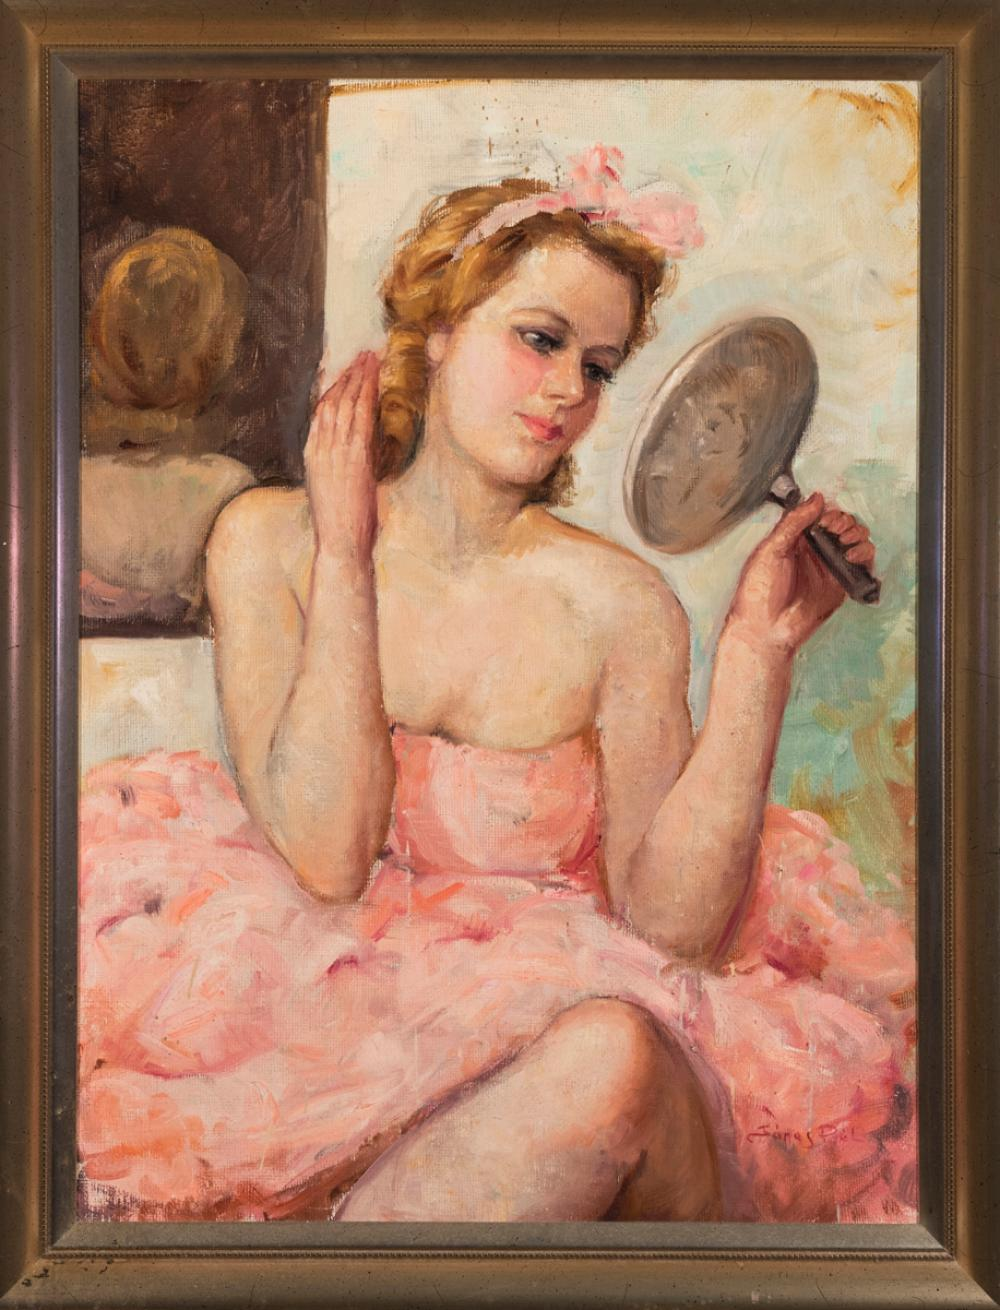 Pal Fried, Hungarian (1893-1976), Ballerina in pink, oil on masonite, 32 x 23 1/2 inches